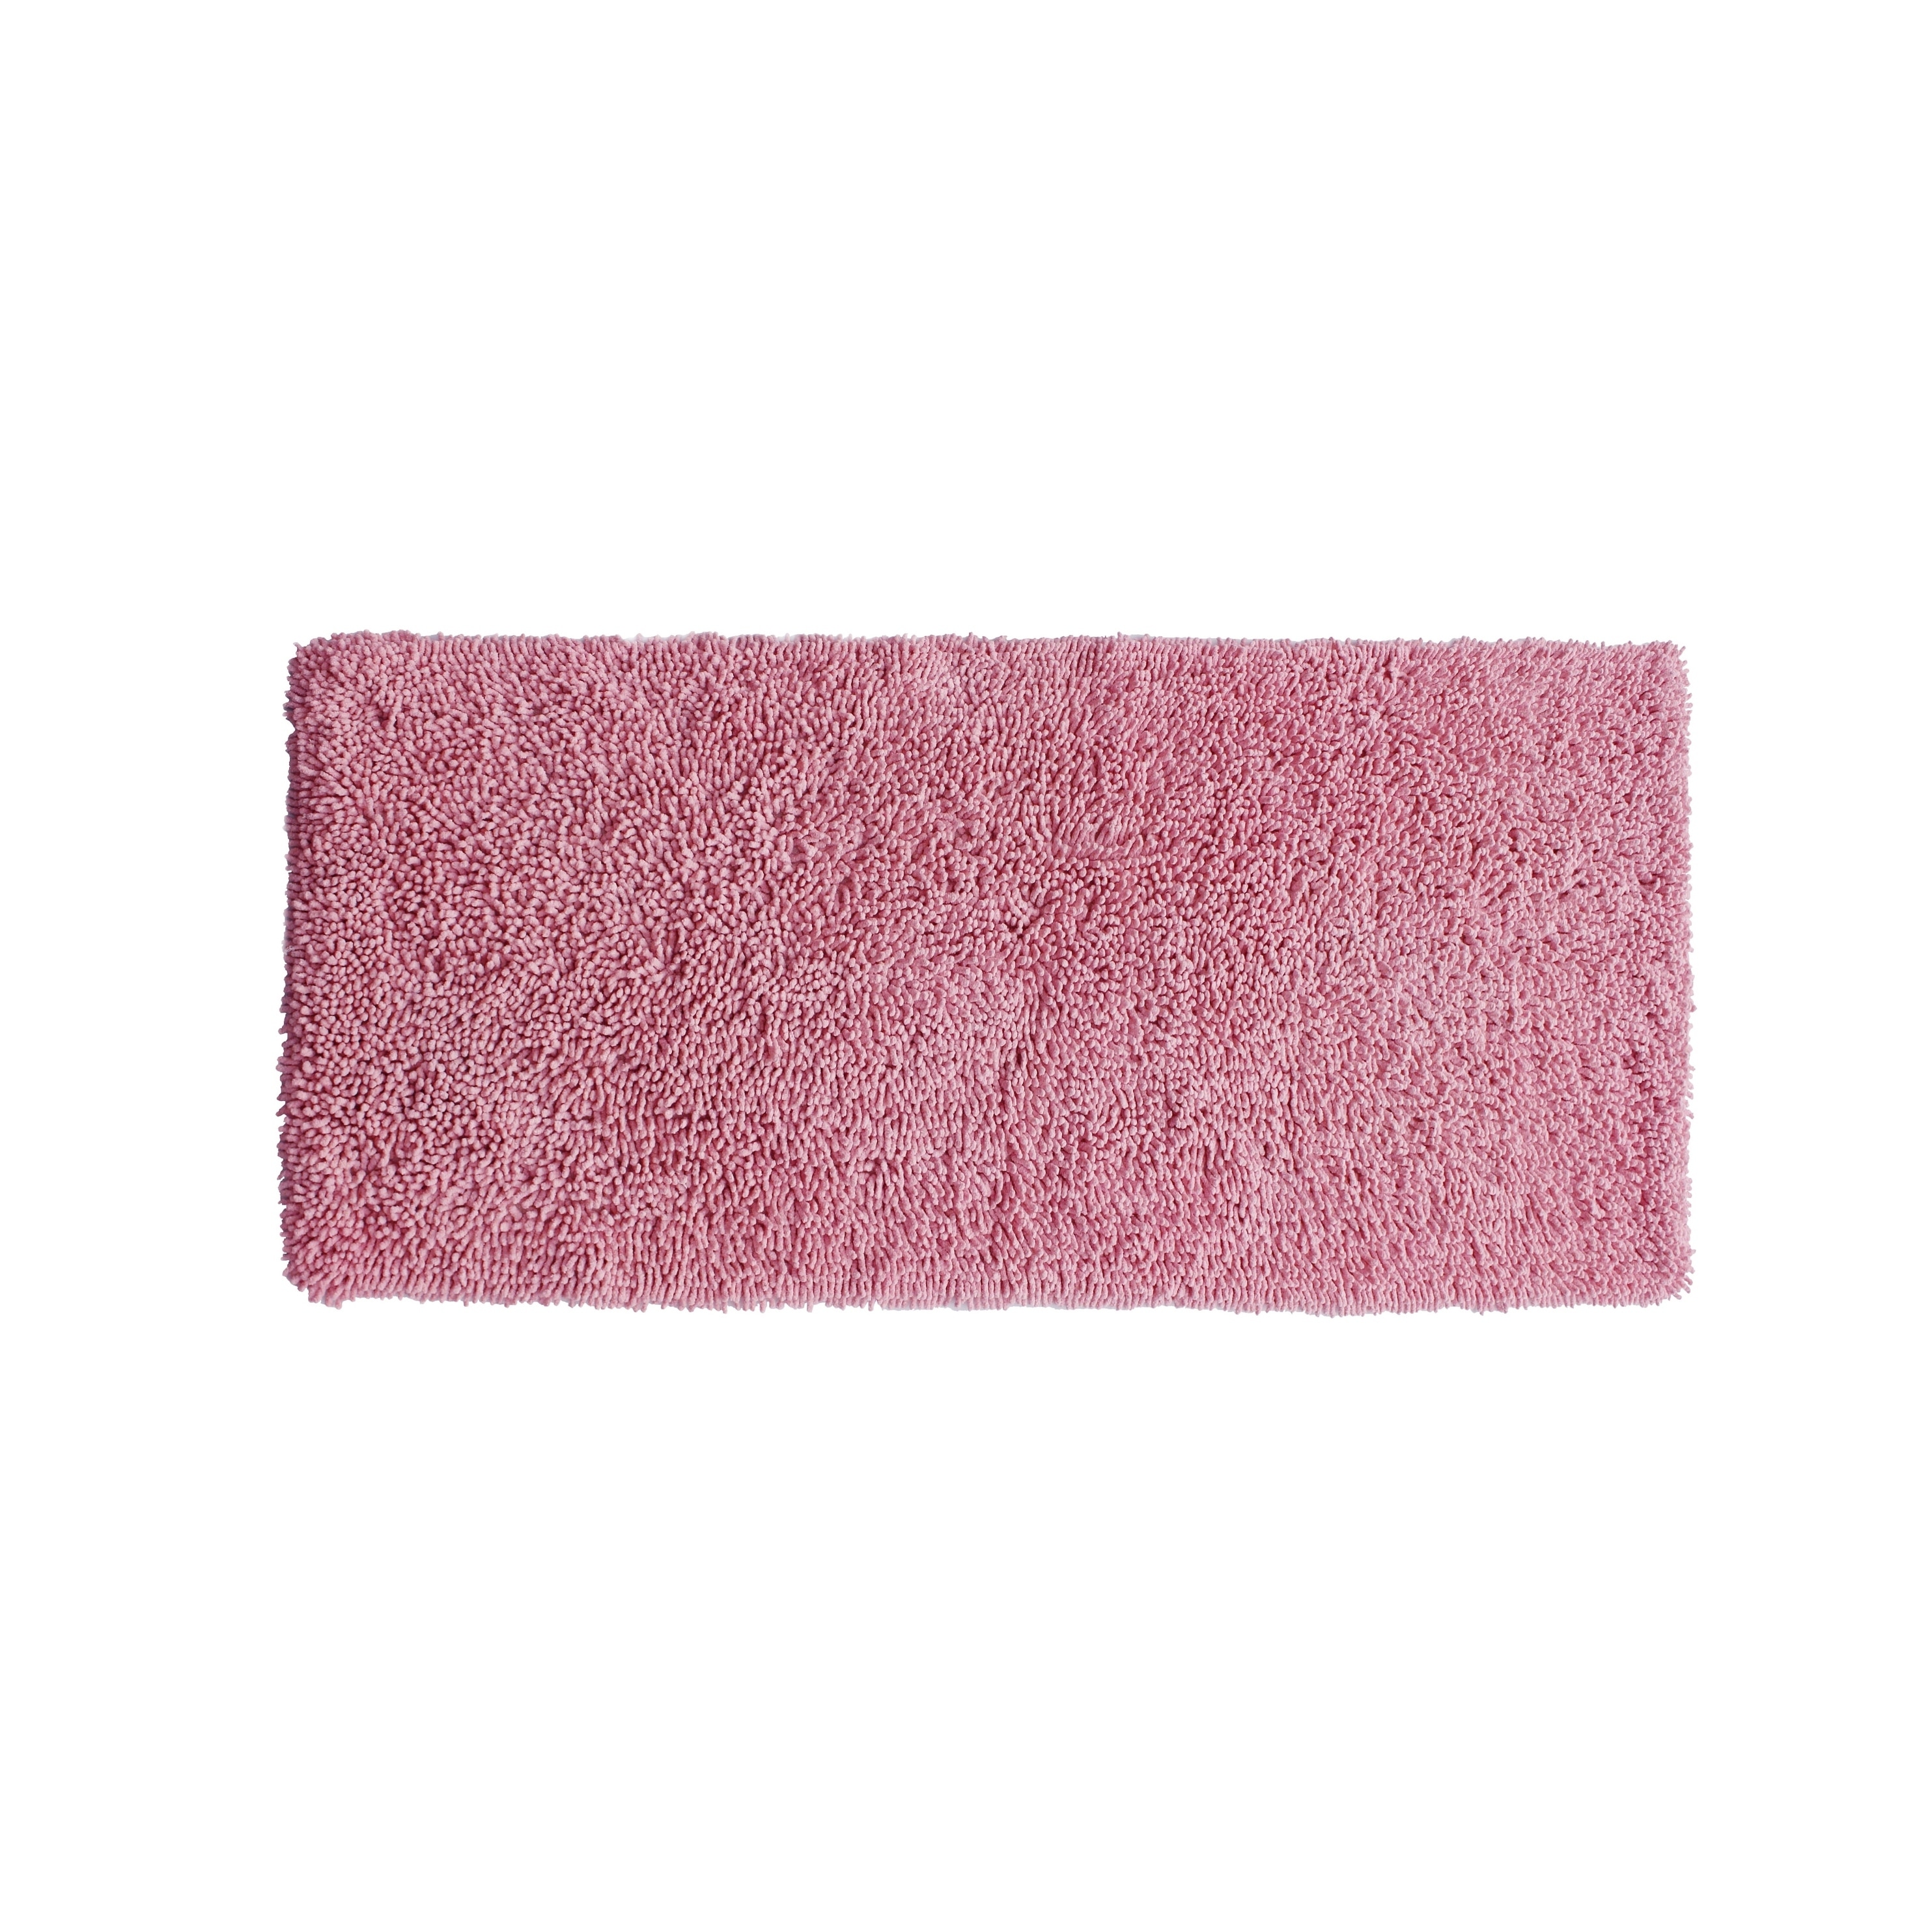 Pink Bath Rugs Mats Find Great Towels Deals Ping At